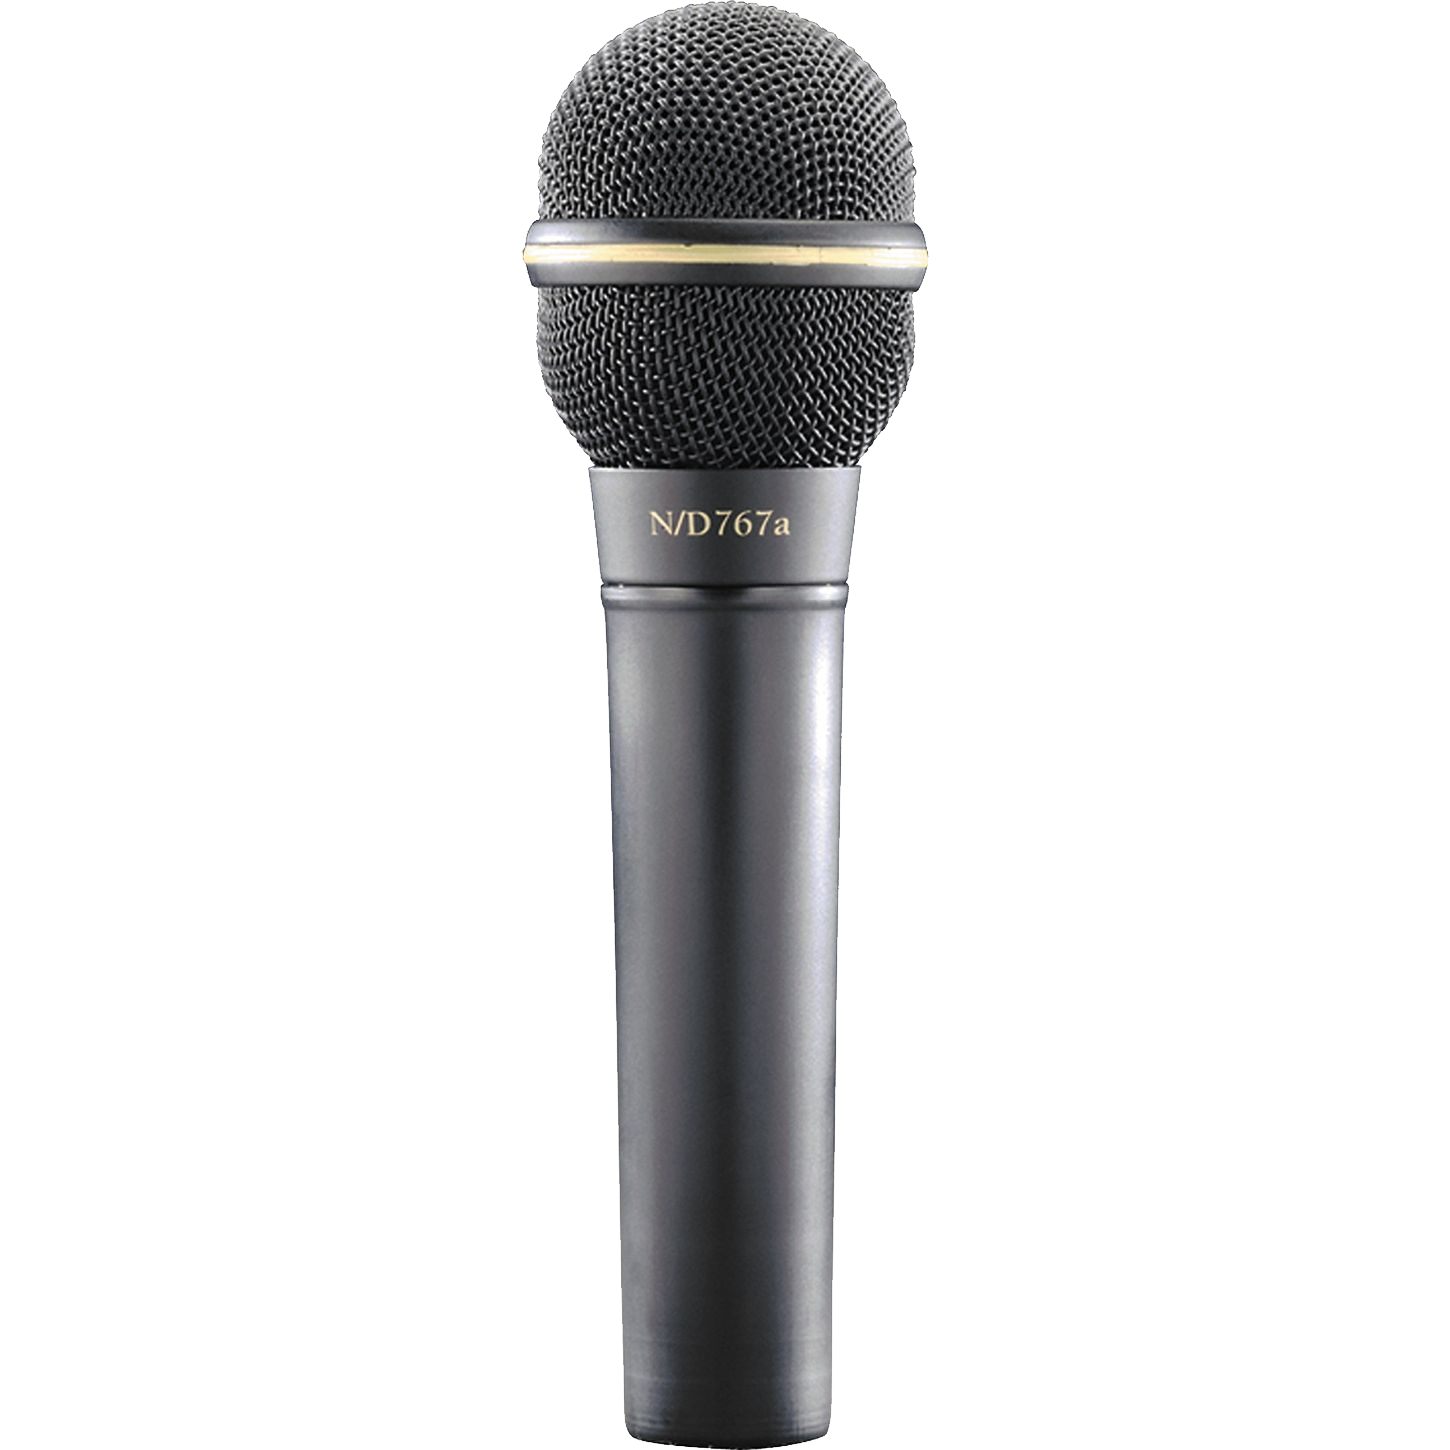 News microphone png. Image free download